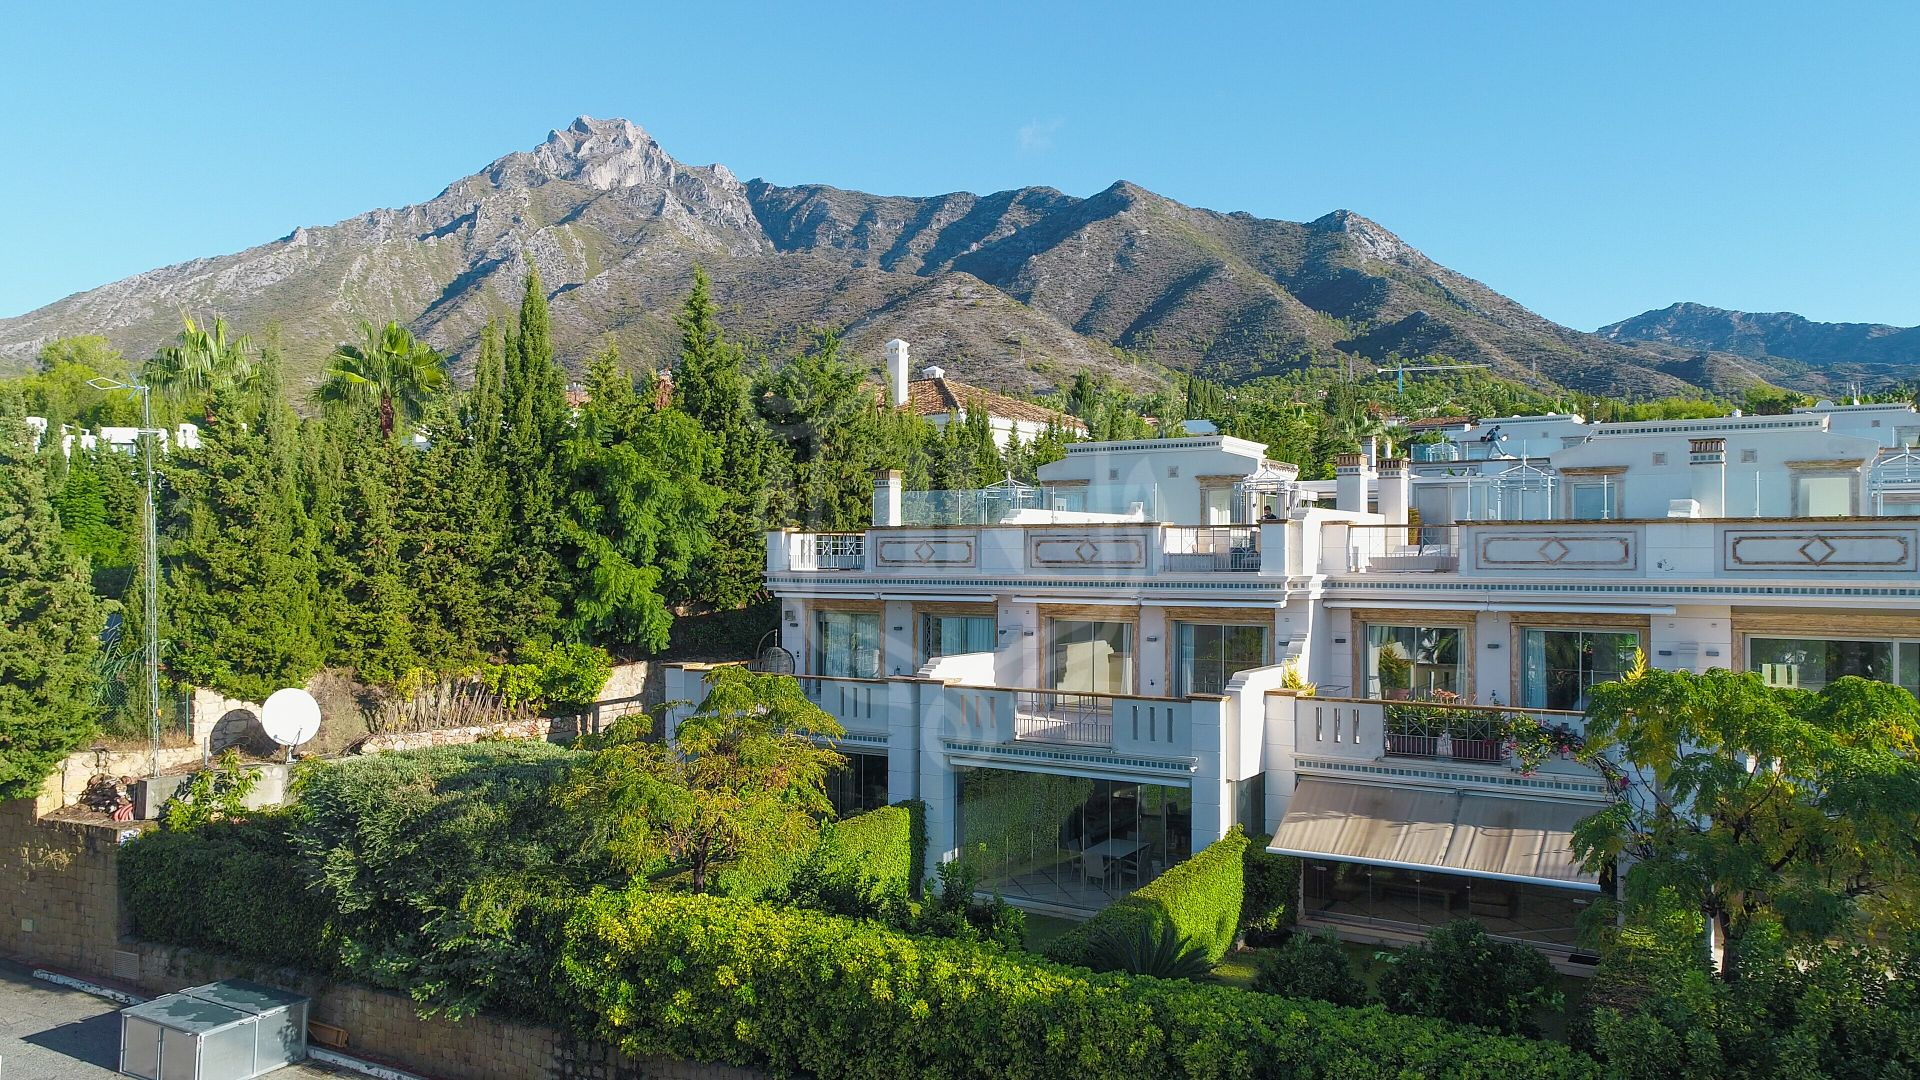 Wonderful townhouse with panoramic mountain and sea views in Sierra Blanca del Mar